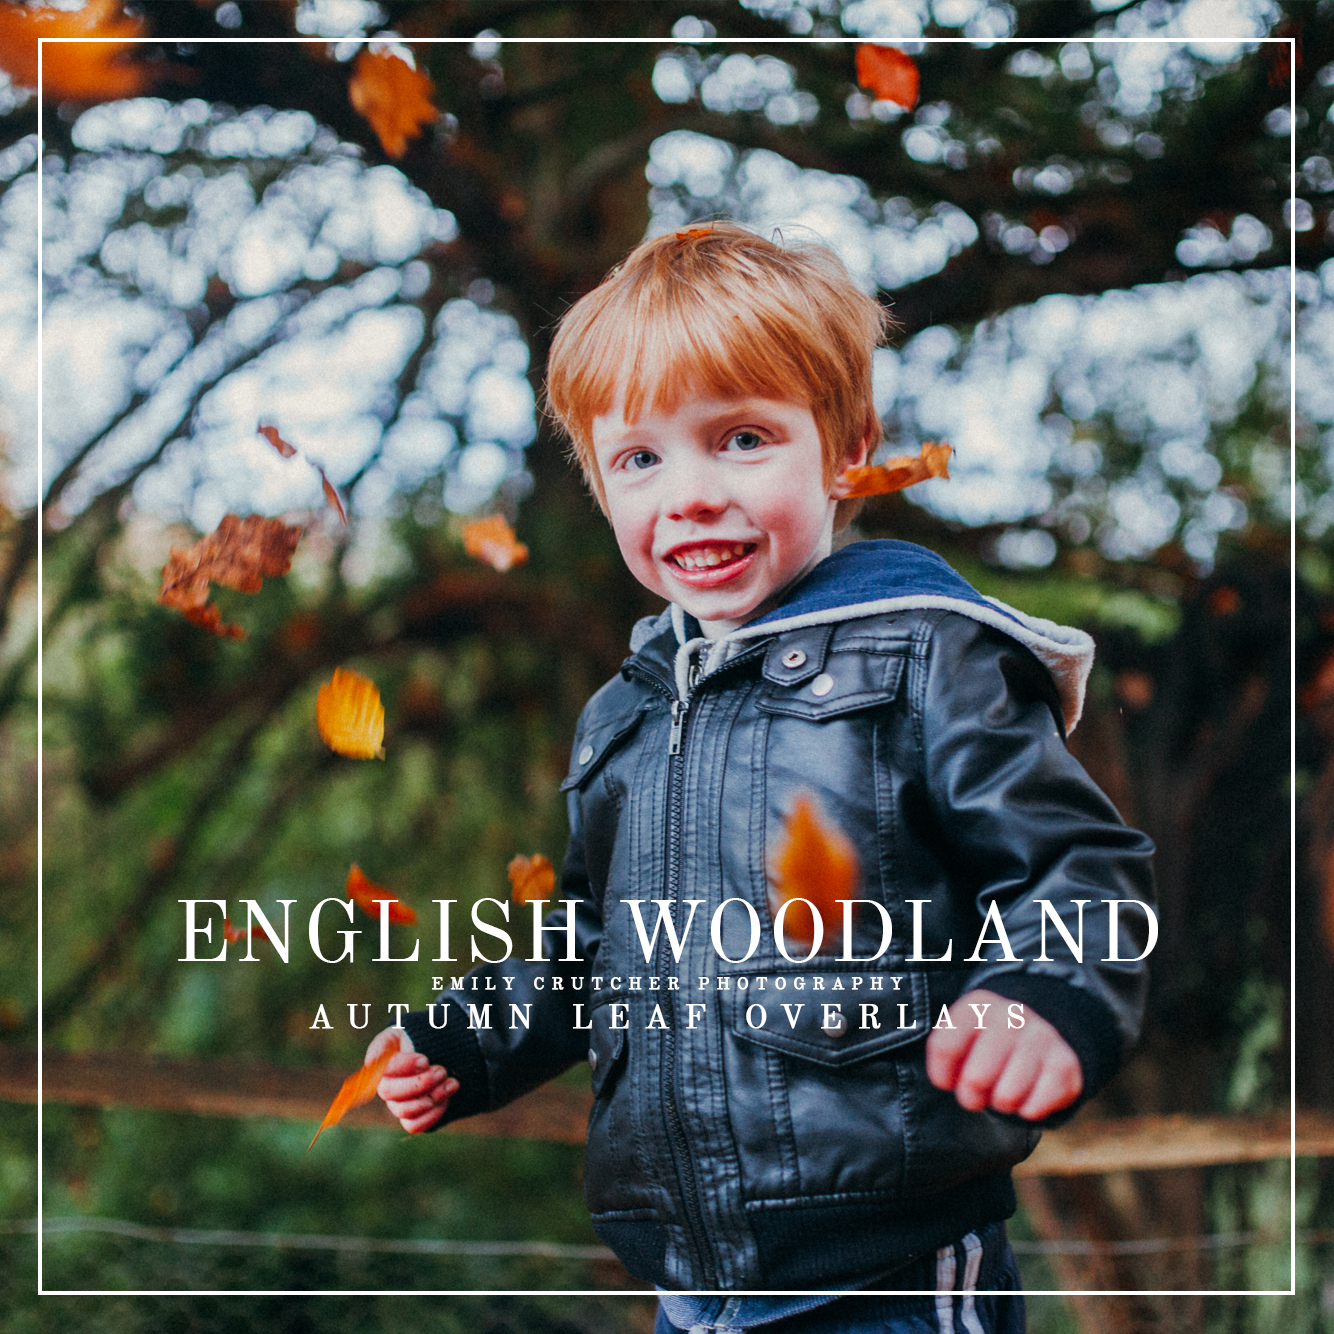 English Woodland Autumn Leaf Overlays